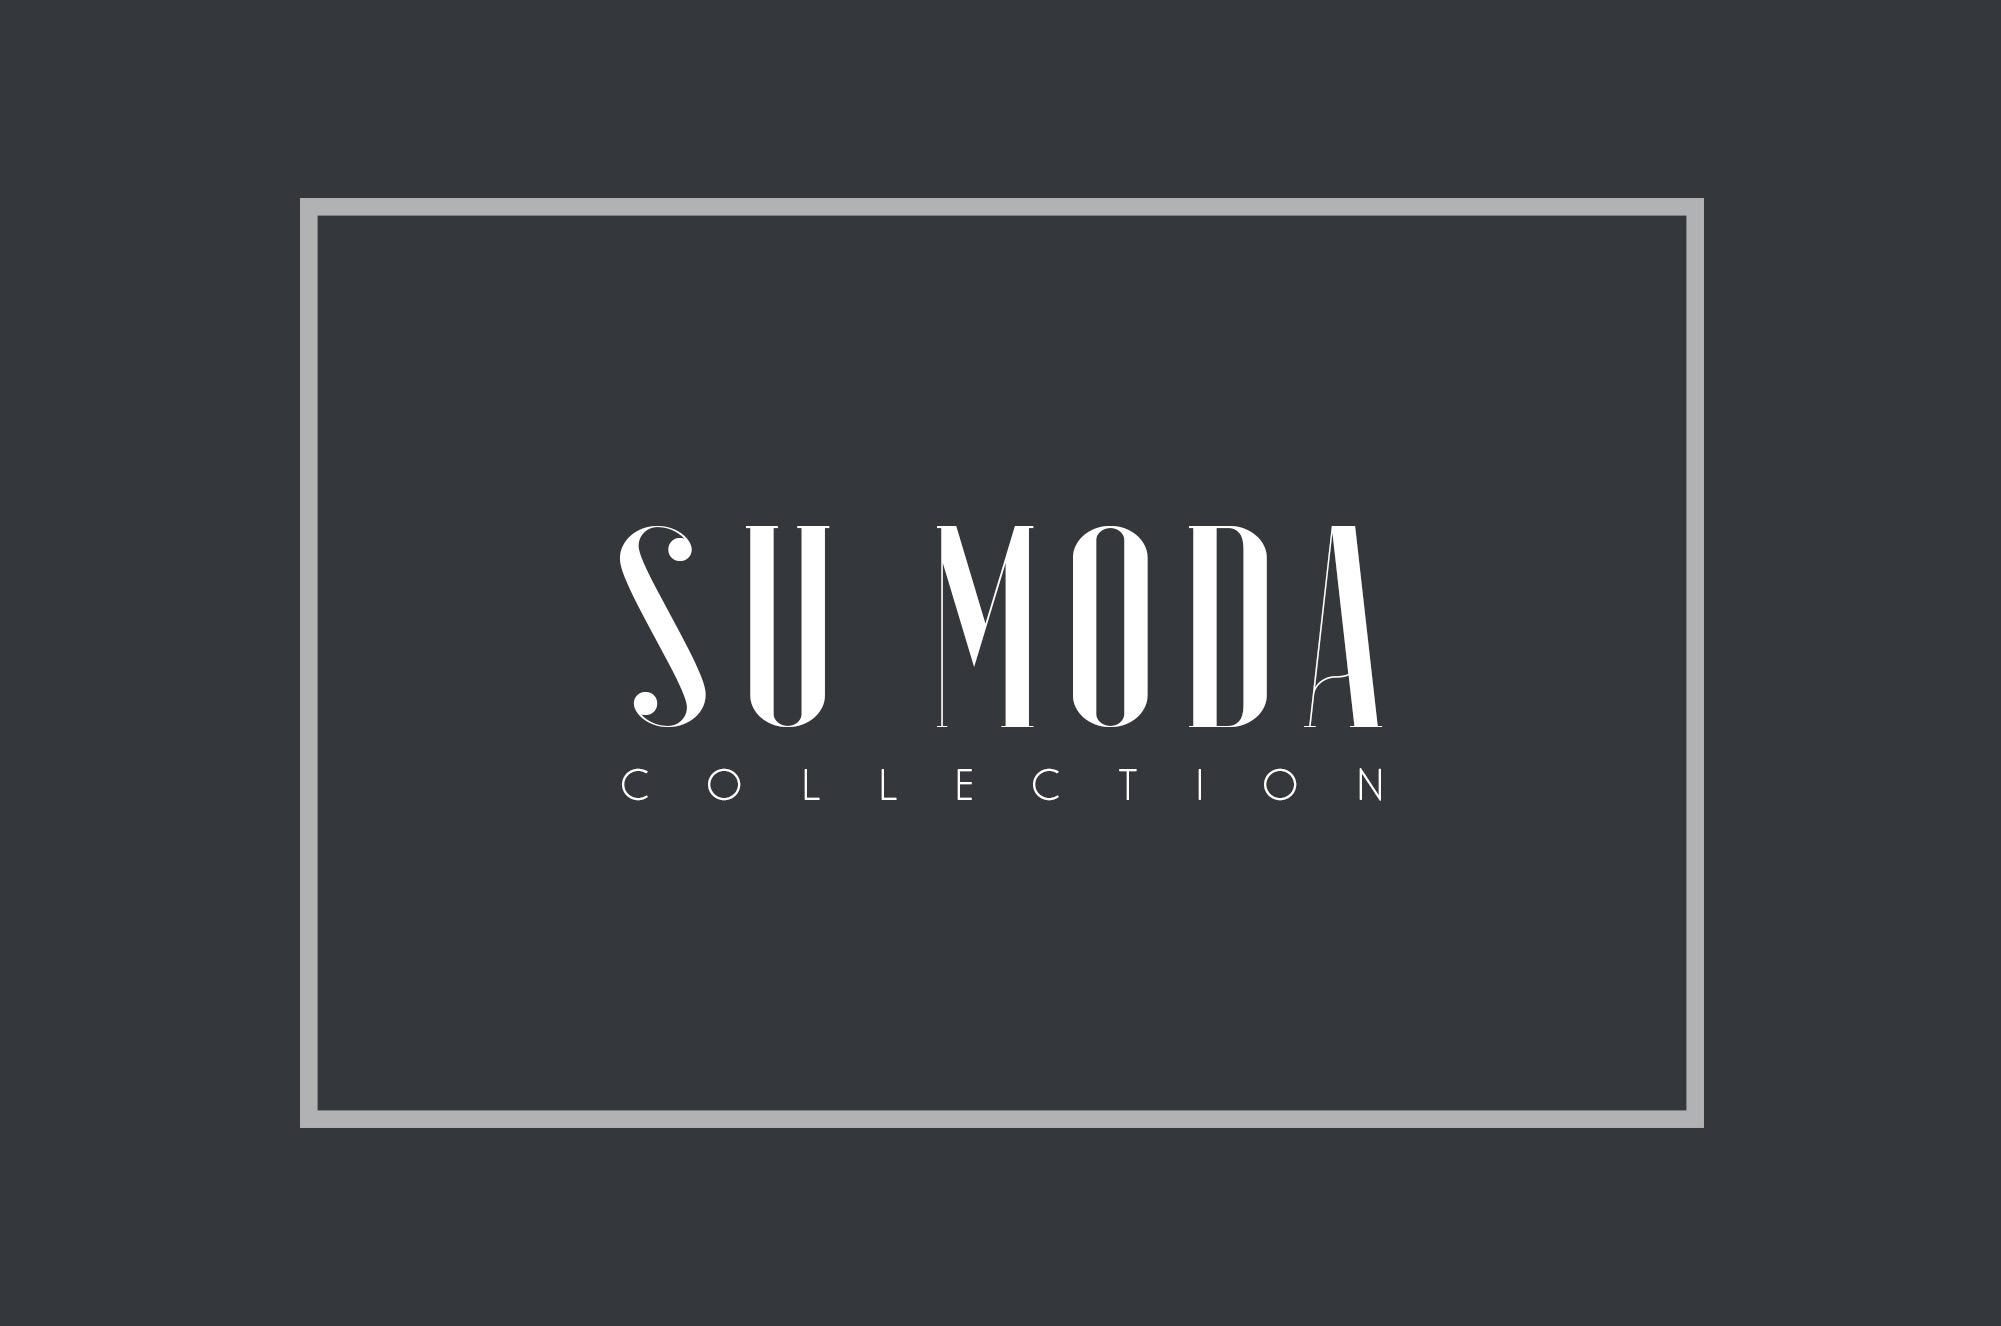 SU MODA collection